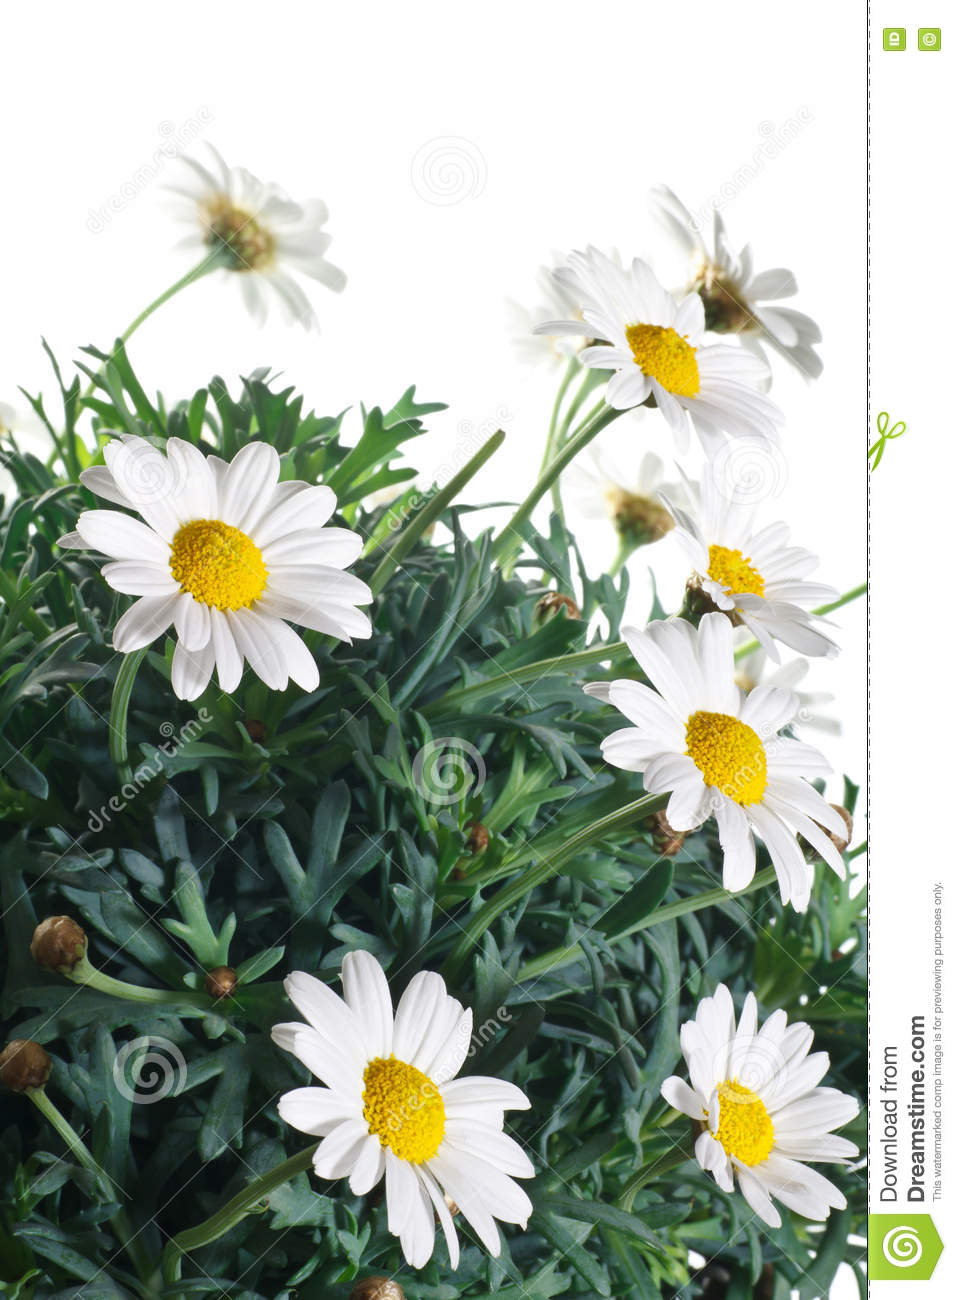 Daisy Flowers And Leaves Stock Image Image Of Gardening 73298957